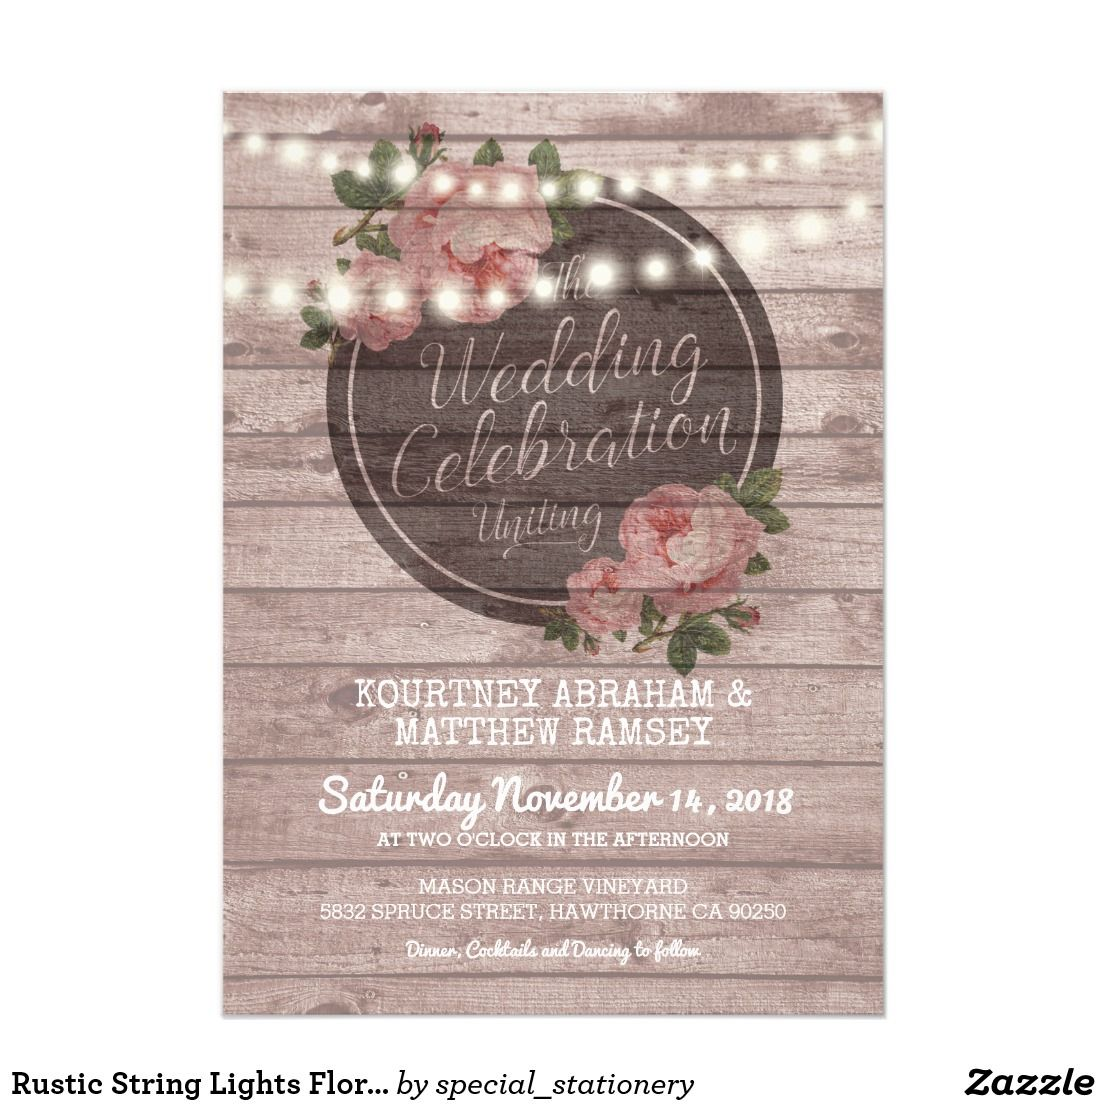 Wedding decorations with lights november 2018 Rustic String Lights Floral Wedding Invitation  Floral wedding